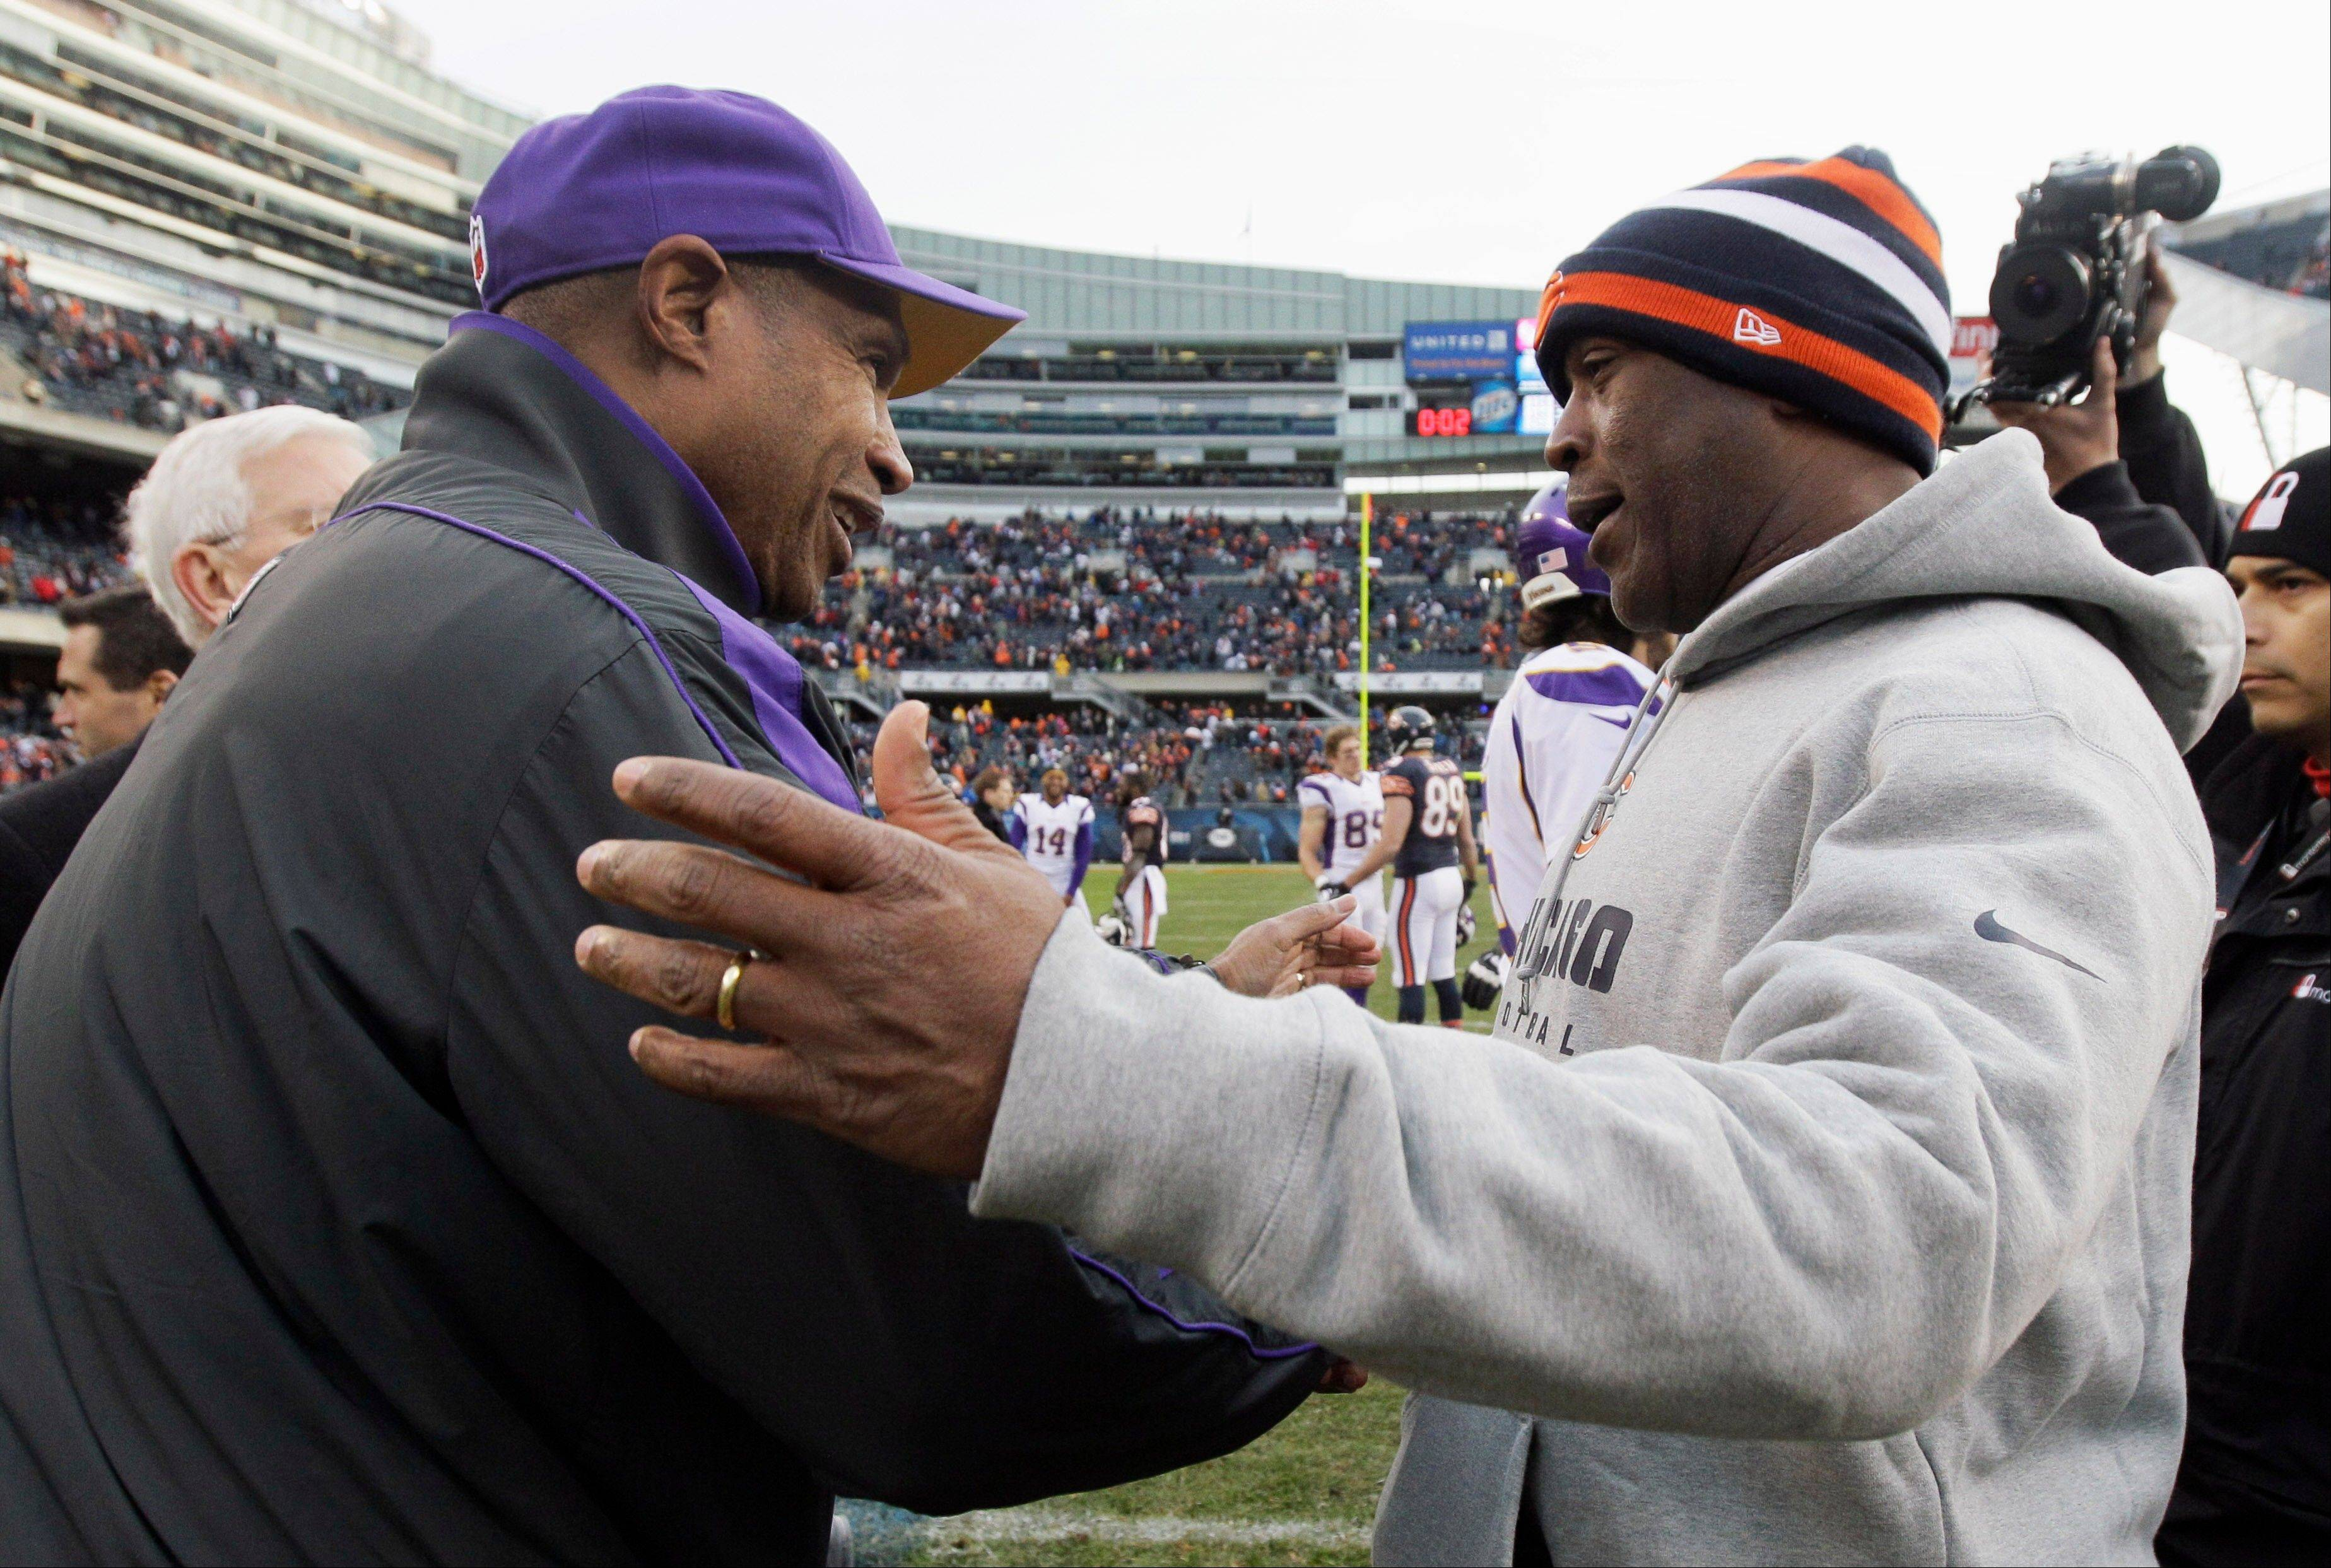 Former Bears coach Lovie Smith, right, is the new coach of the Tampa Bay Buccaneers, and former Vikings coach Leslie Frazier, left, reportedly will be his defensive coordinator.